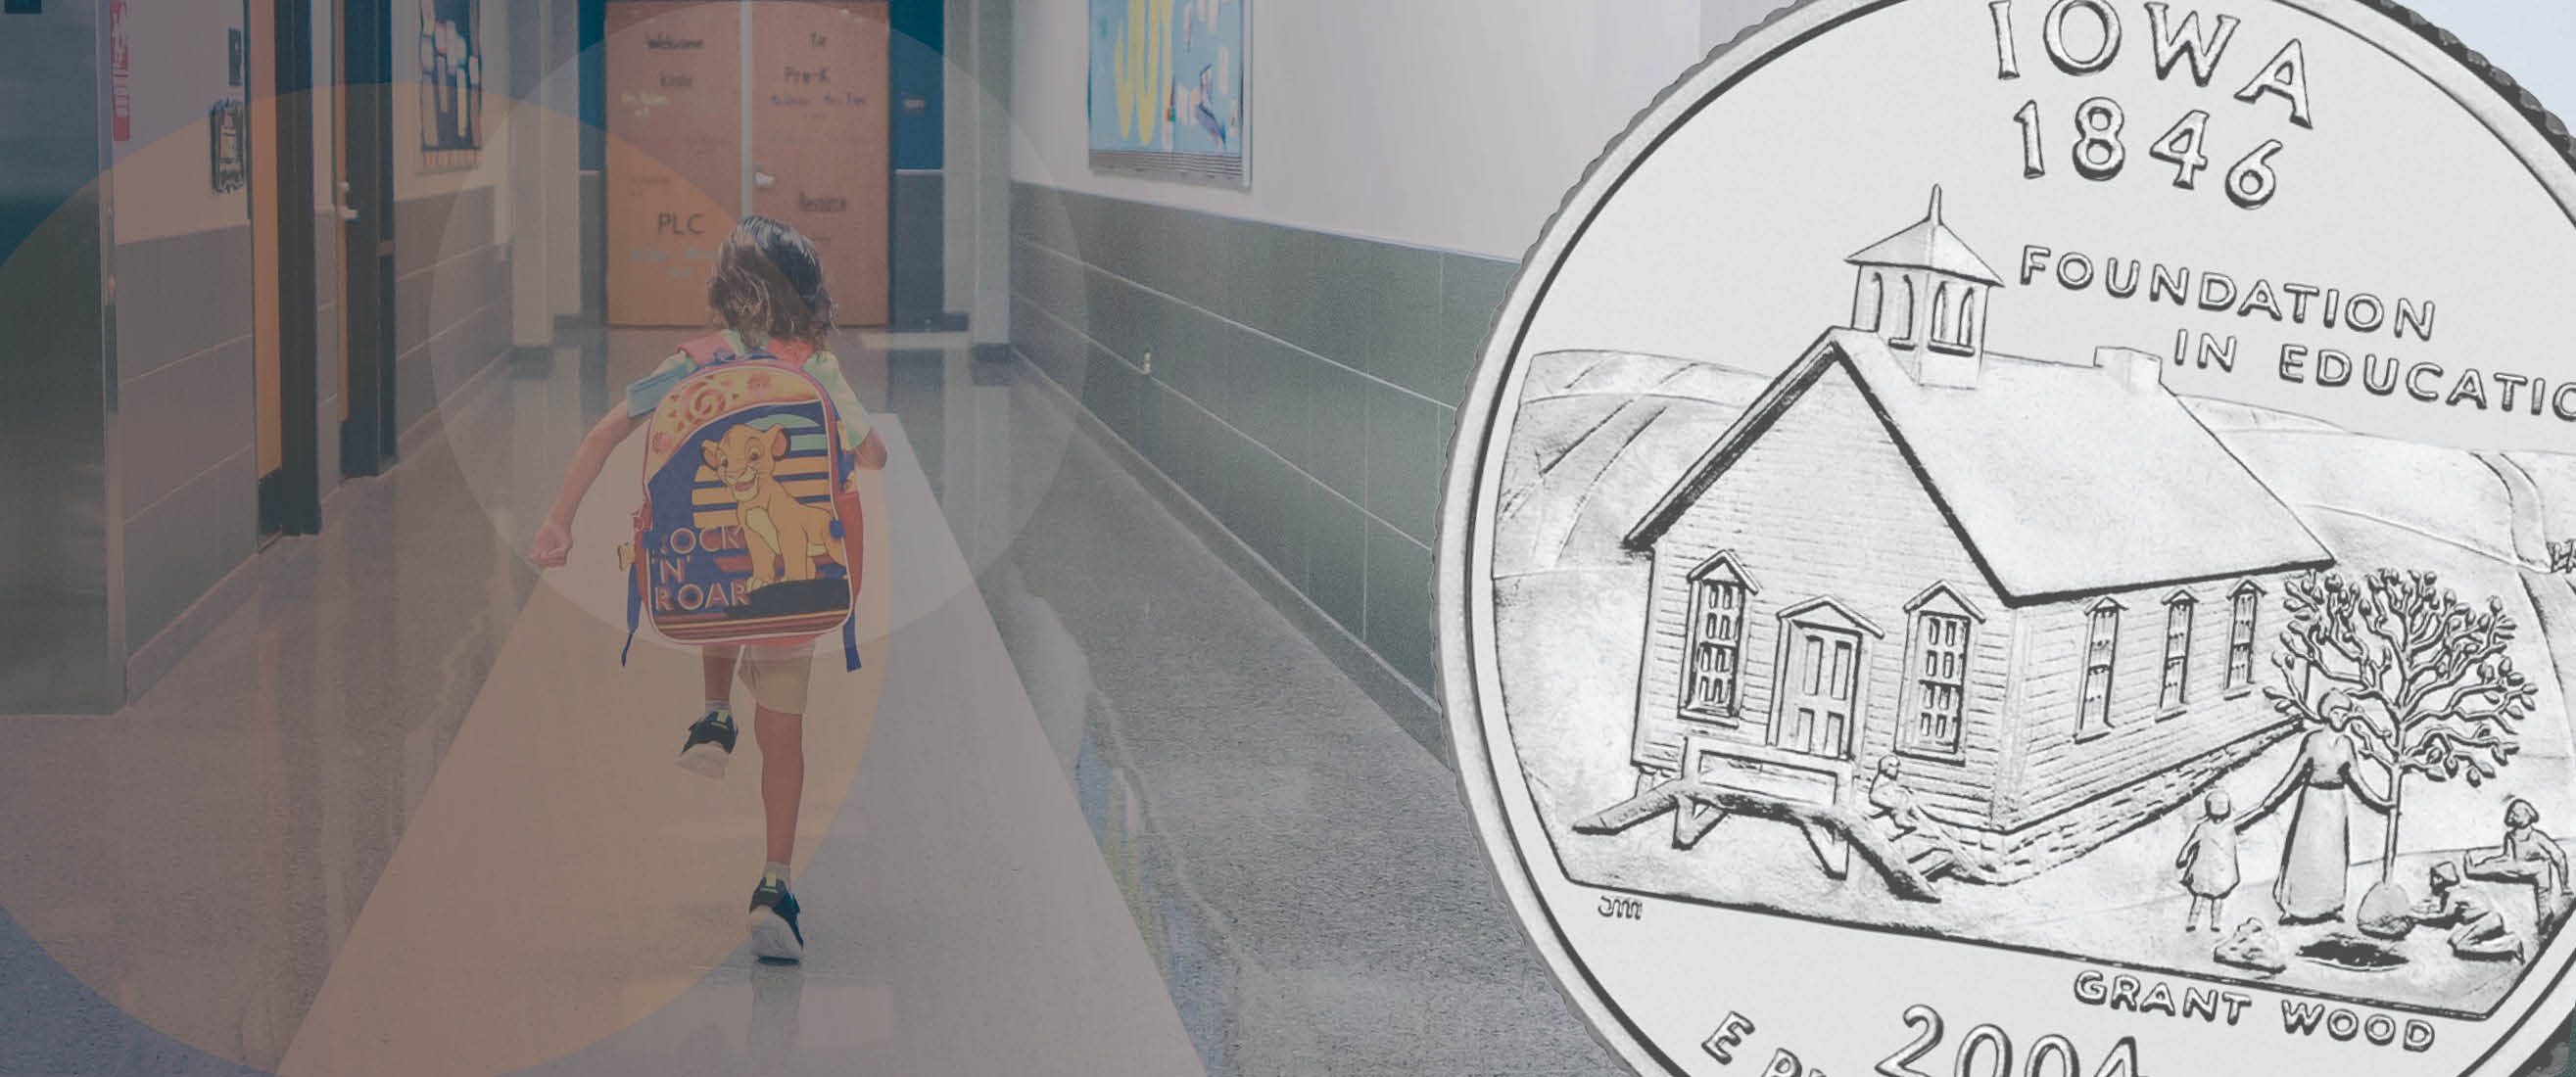 student in hallway, Iowa state quarter